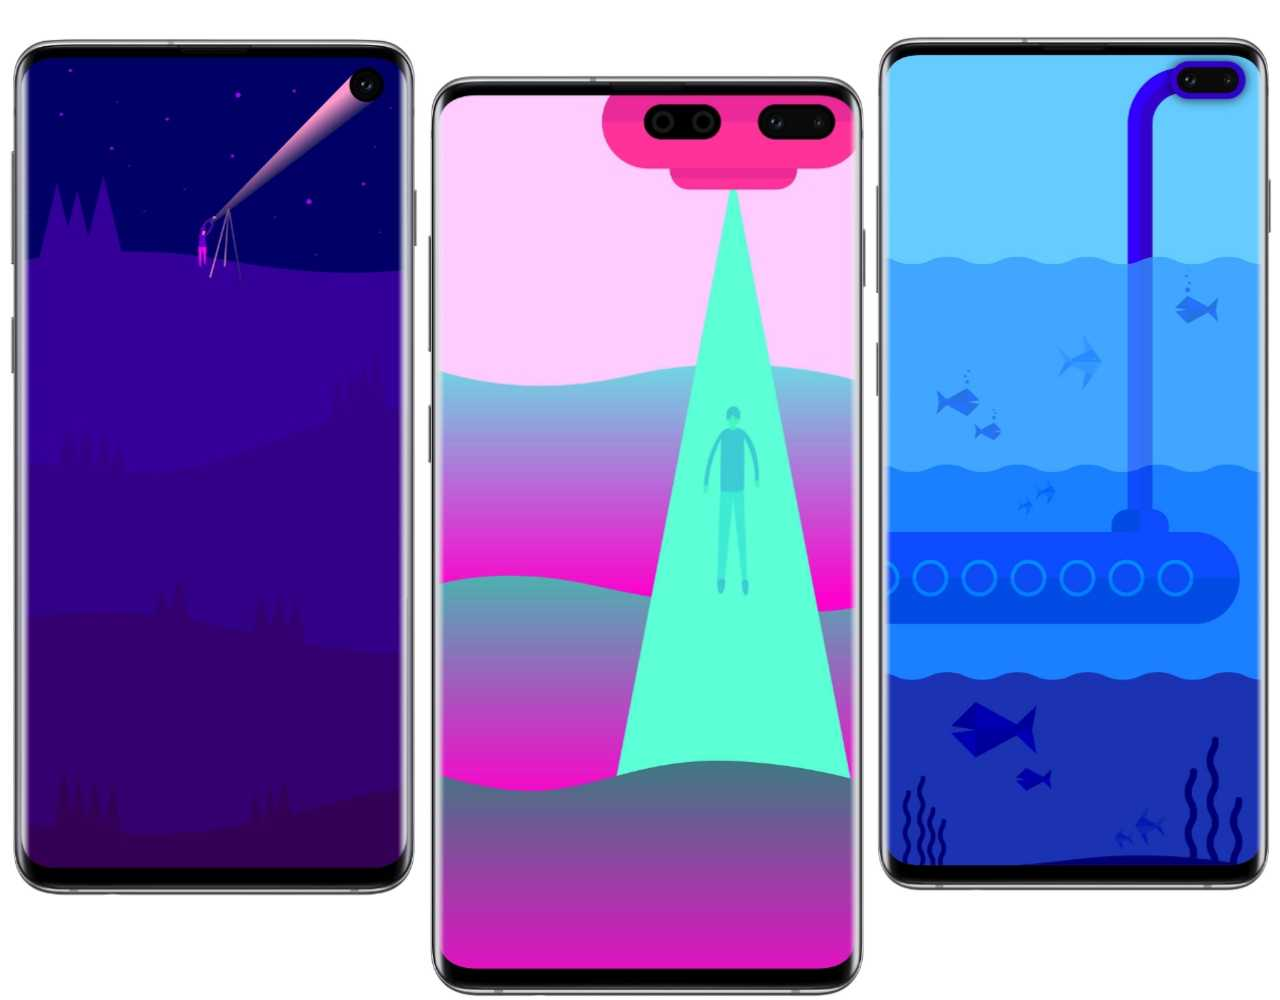 Best Samsung Galaxy S10e, S10 and S10 Plus wallpapers